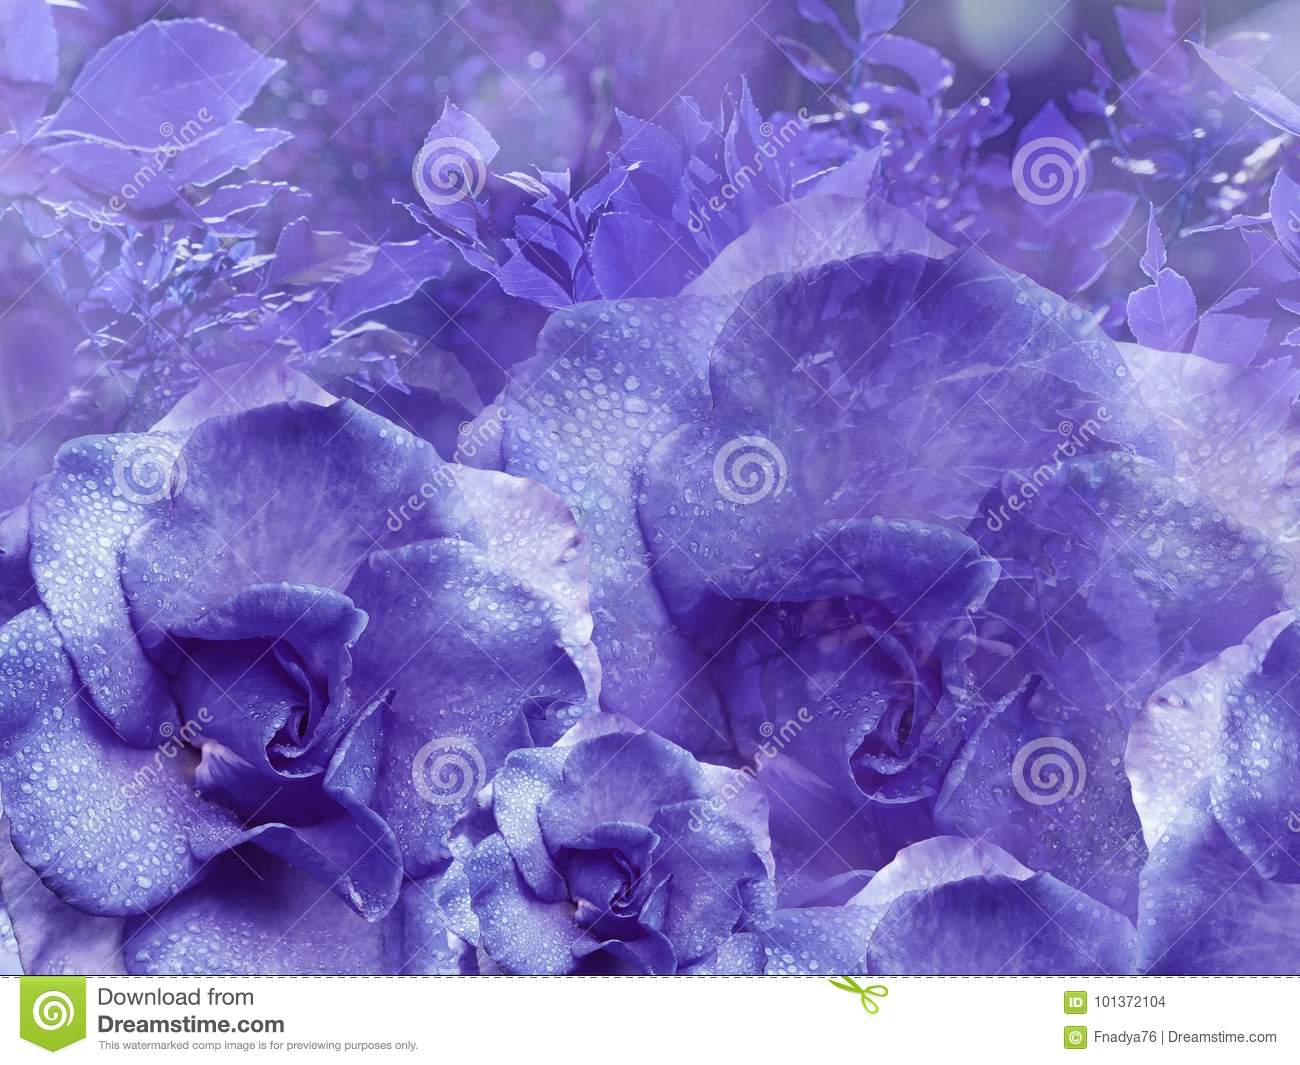 Floral purple background from roses. Flower composition. Flowers with water droplets on petals. Close-up.